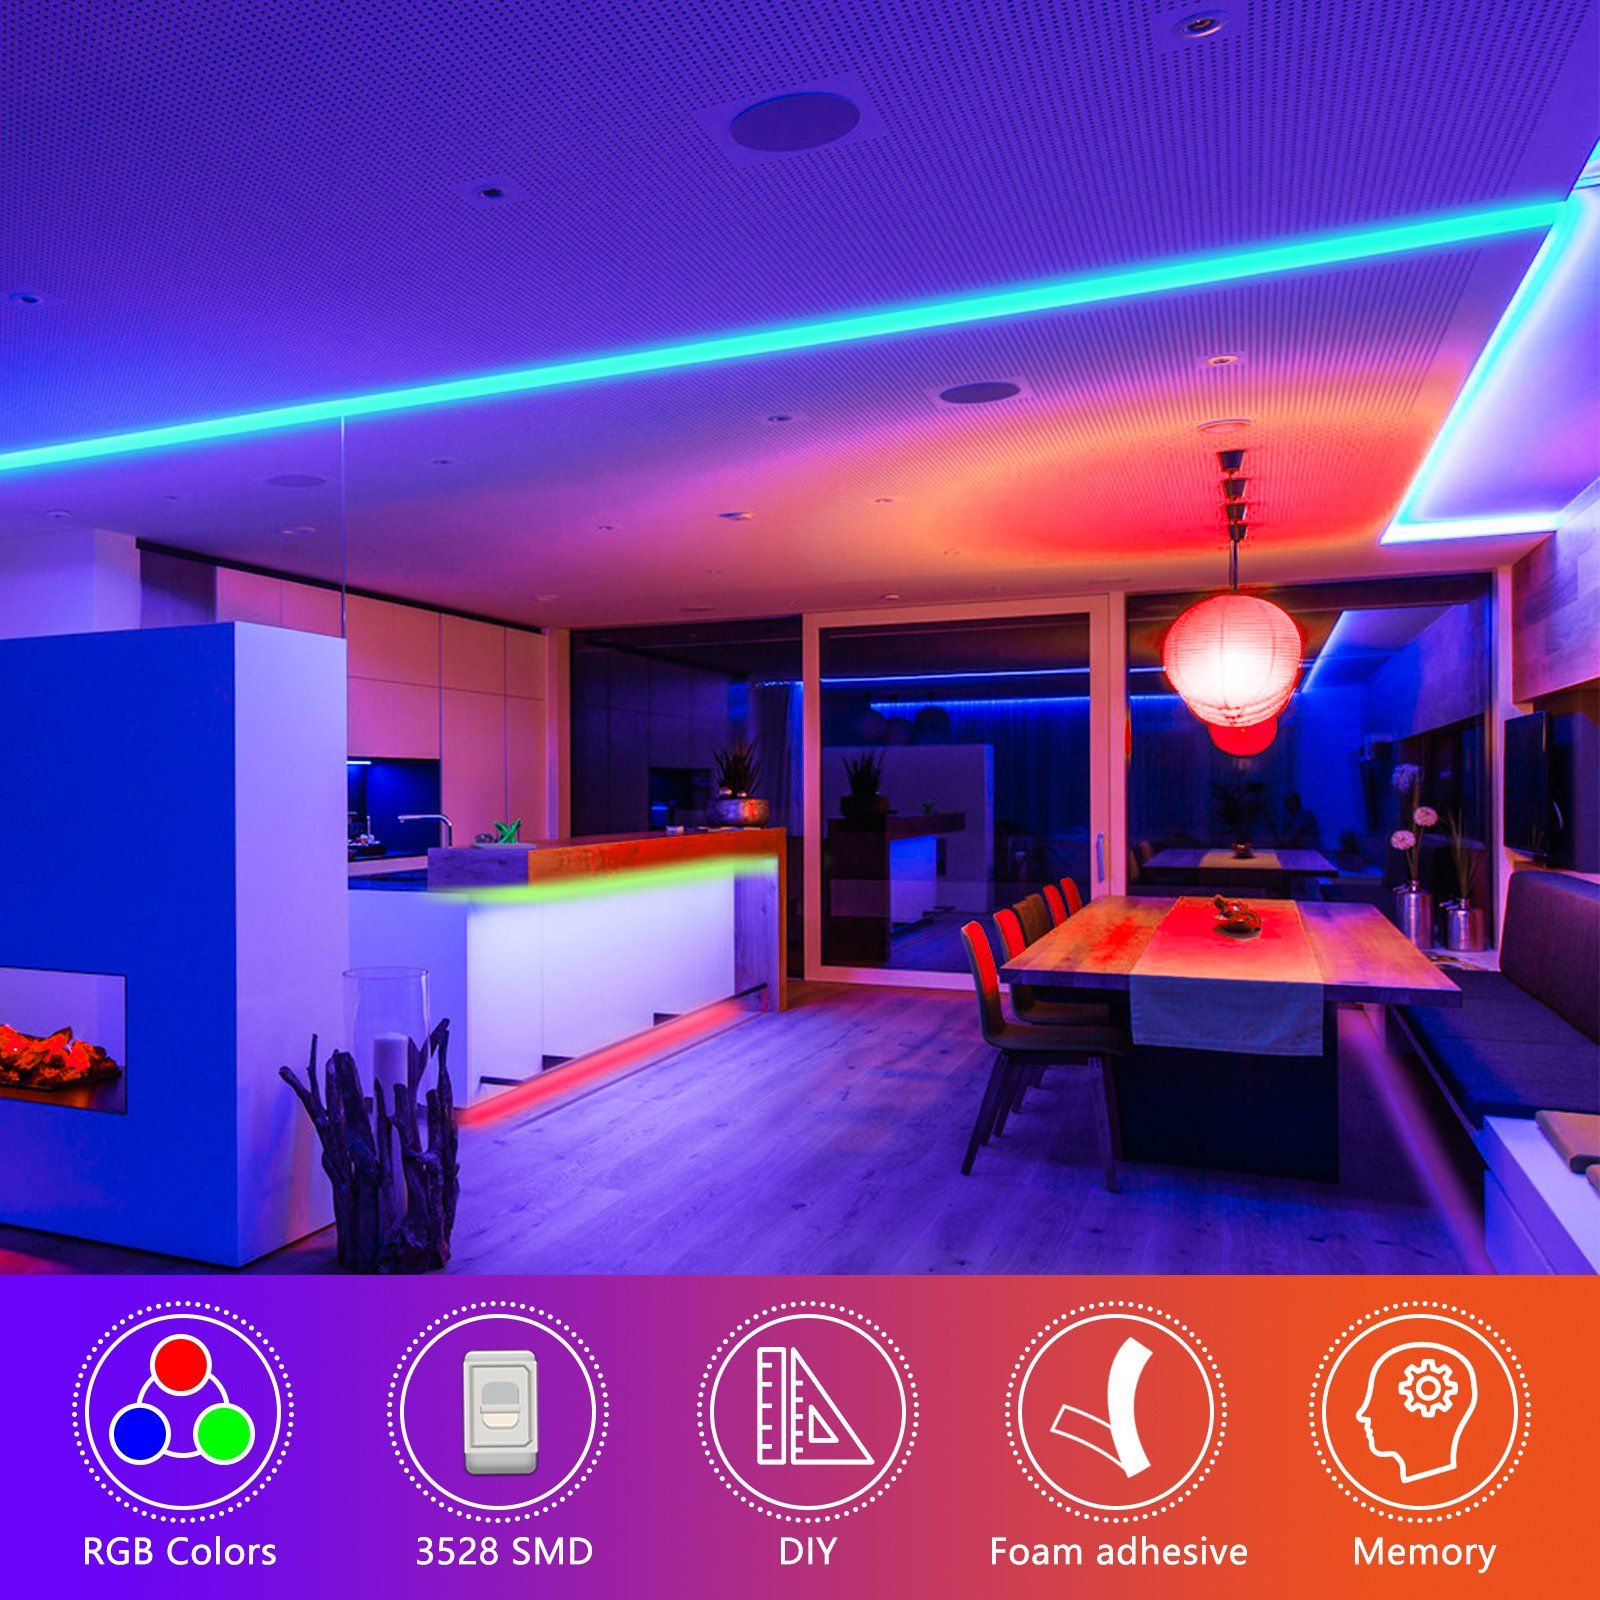 Tsv 16 4ft 5m 300led Rgb Muliticolor Changing Flexible Led Rope Lights Tv Backlight Tape Strip Light Kit Waterproof With 44key Ir Remote Control 8 Brightness L In 2020 Strip Lighting Led Strip Lighting